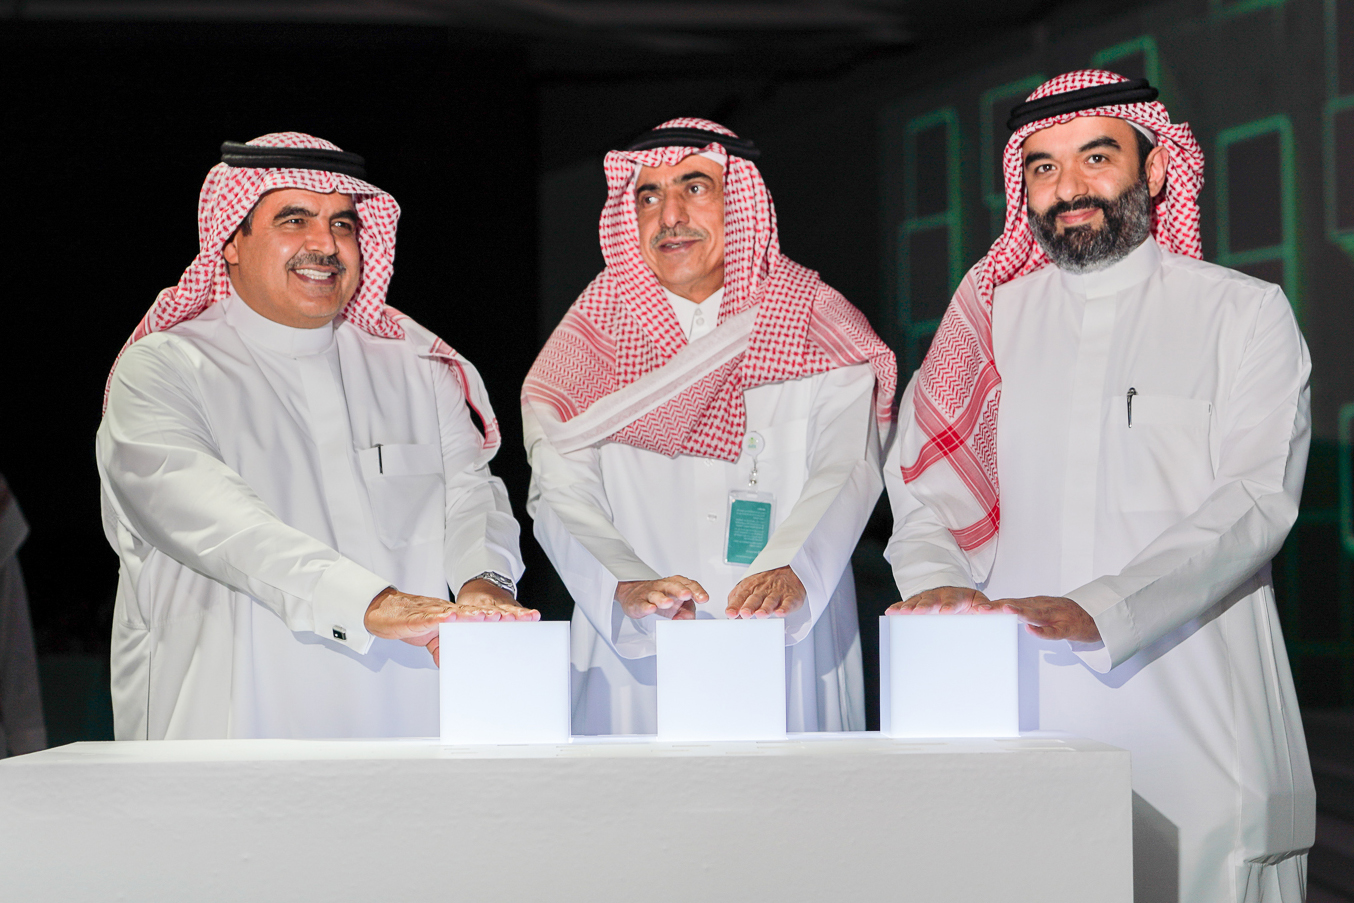 From the right, The Minister of Communications and Information Technology Eng. Abdullah Al-Sawahah. The Minister of Municipal and Rural Affairs, Abdul Latif Al-Sheikh. Advisor At Council of Ministers Saudia Arabia, Fahad Al-Sukait.